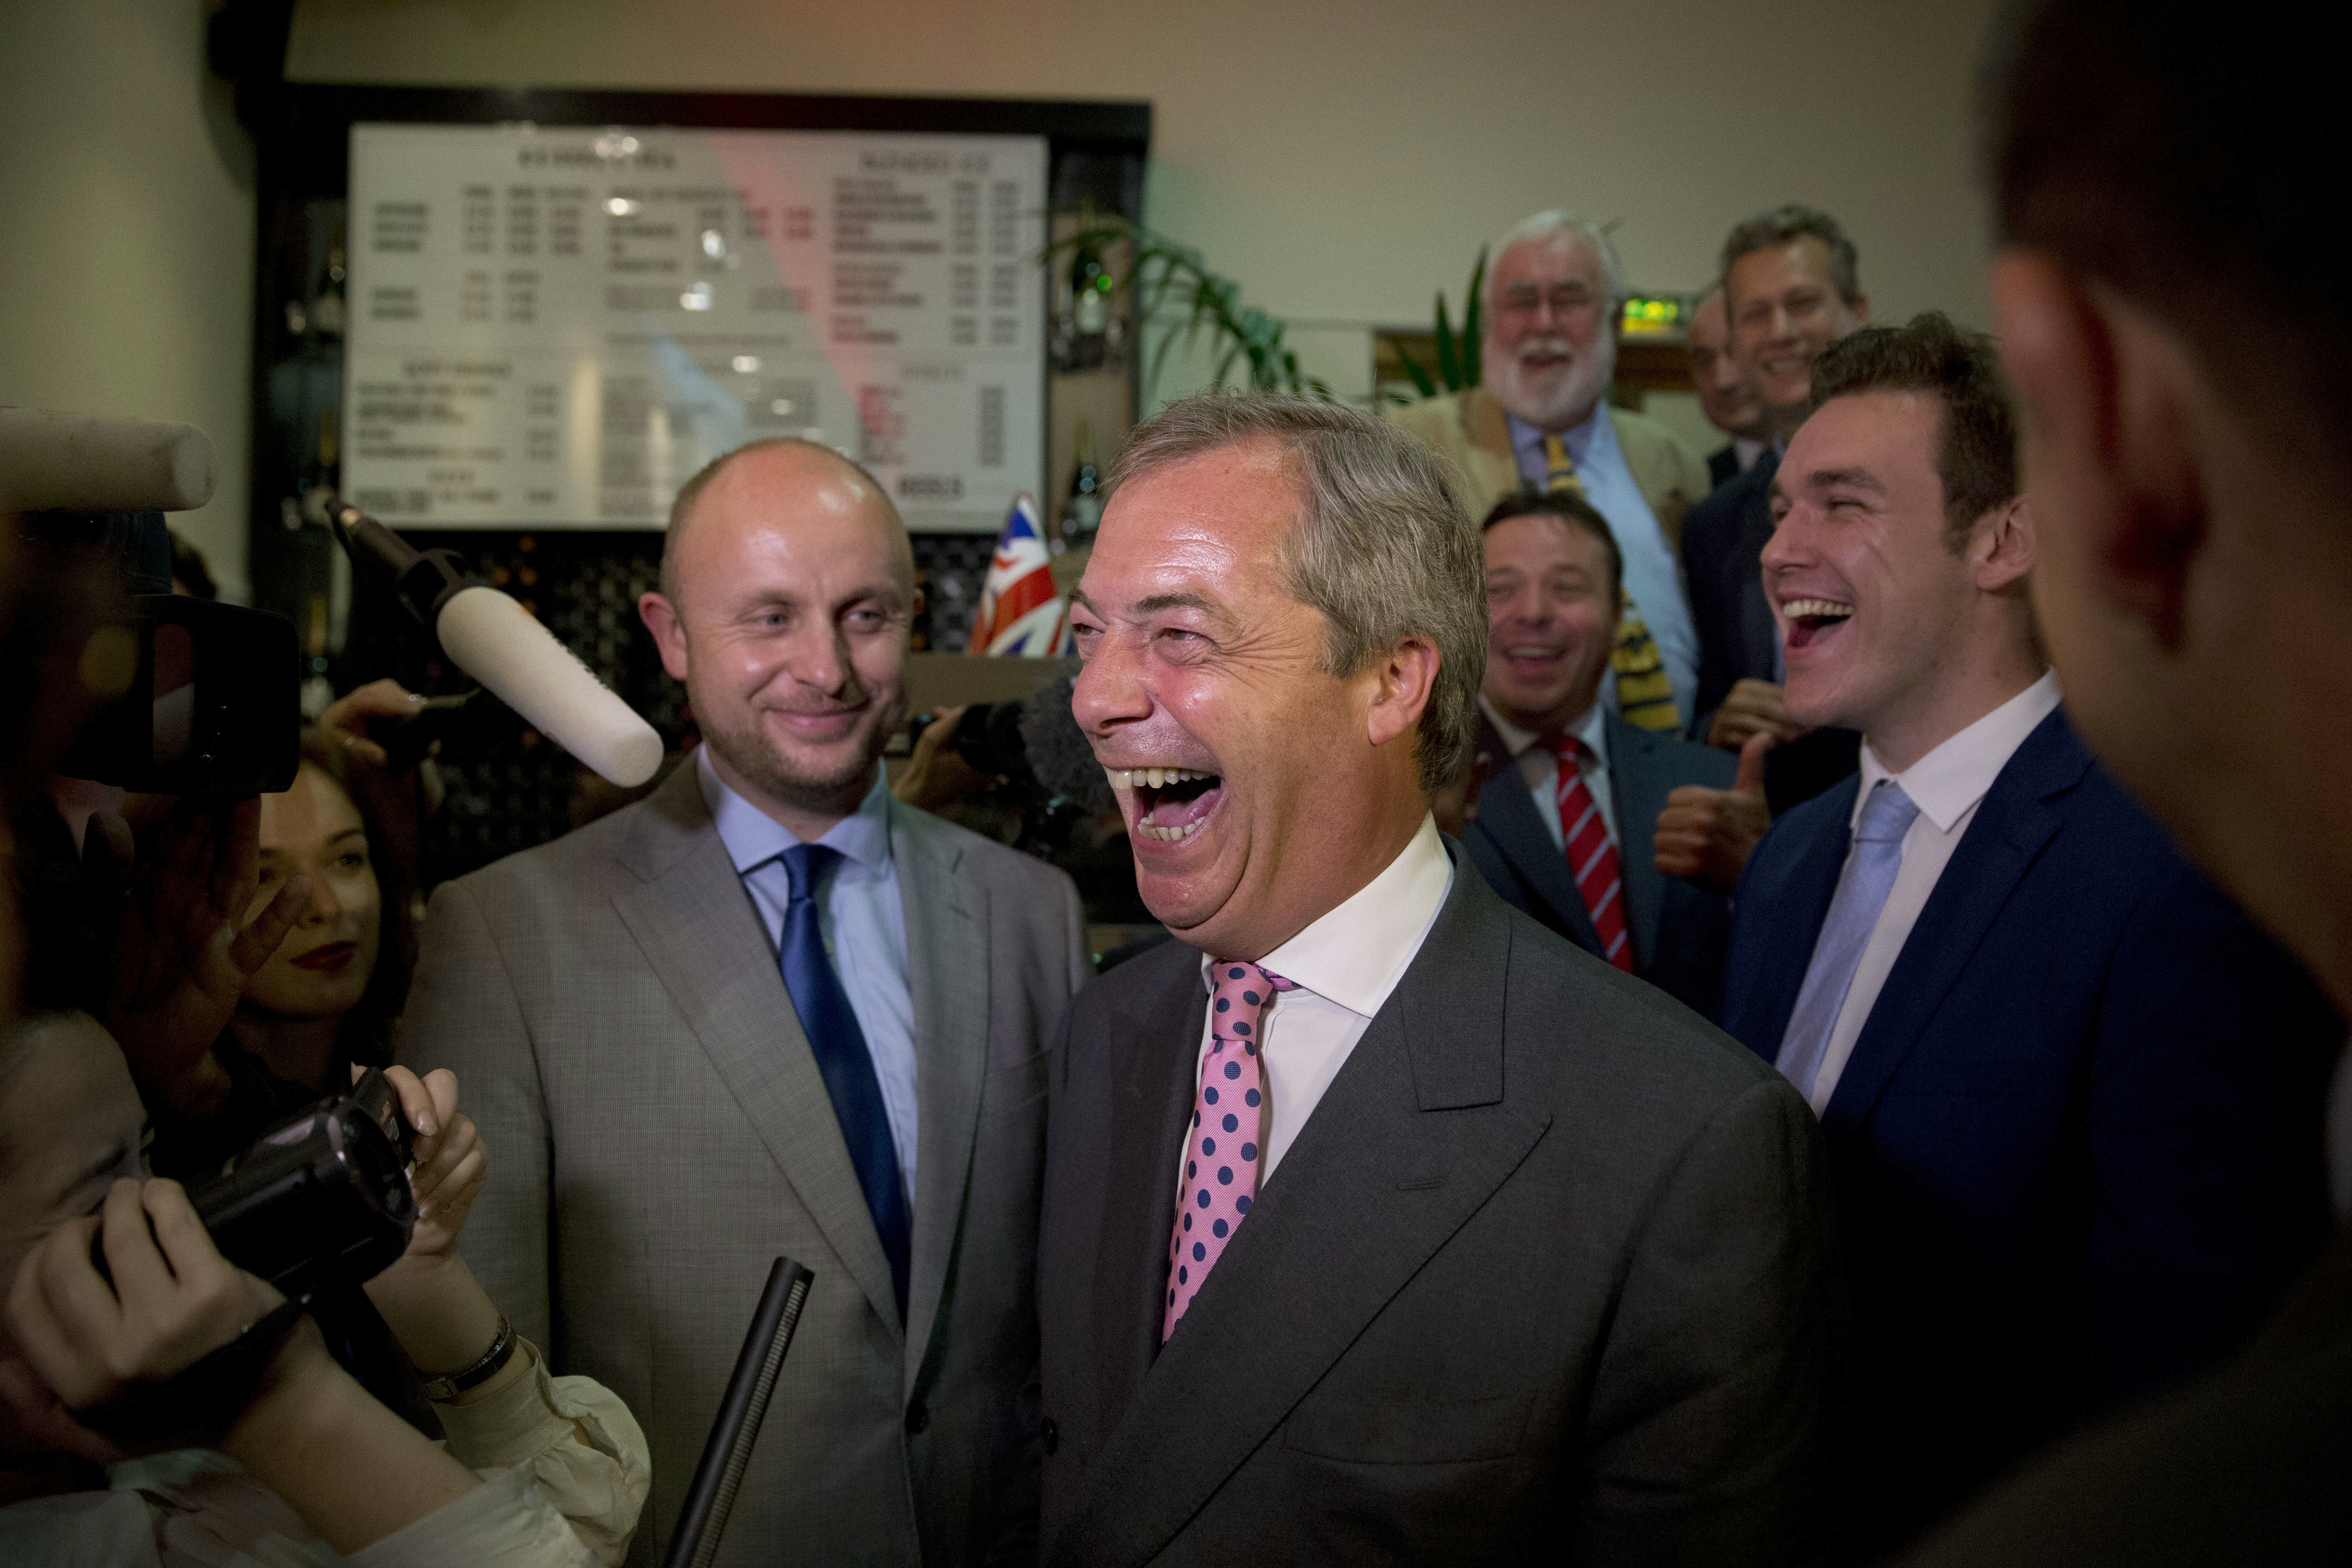 """Nigel Farage, the leader of the UK Independence Party, reacts in celebration at a """"Leave.EU"""" organization party for the British European Union membership referendum in London, Friday, June 24, 2016. Farage said he thinks the """"leave"""" side will win in Britain's historic referendum on European Union membership. (AP Photo/Matt Dunham)"""